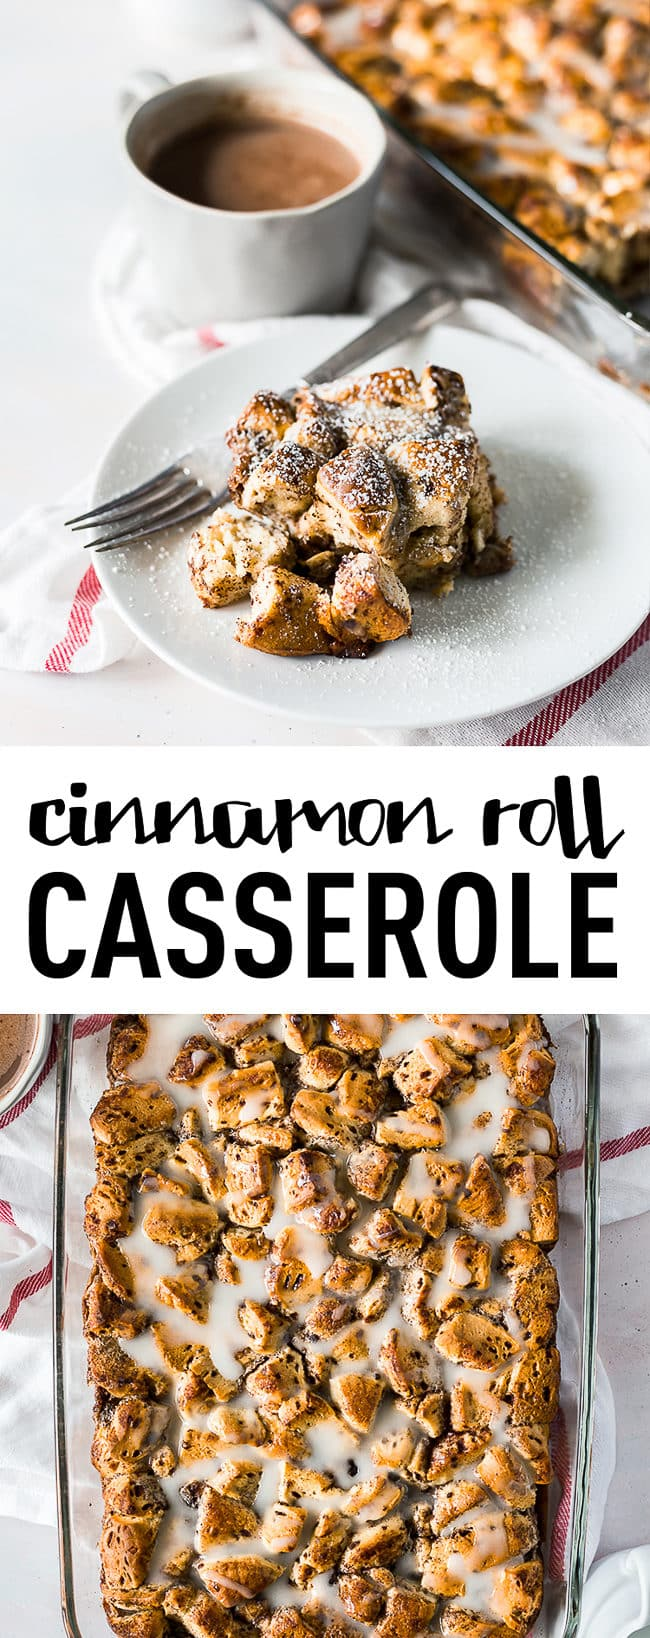 Sweeten-up your morning with this delicious cinnamon roll casserole recipe. #cinnamon #cinnamonrolls #breakfast #casserole